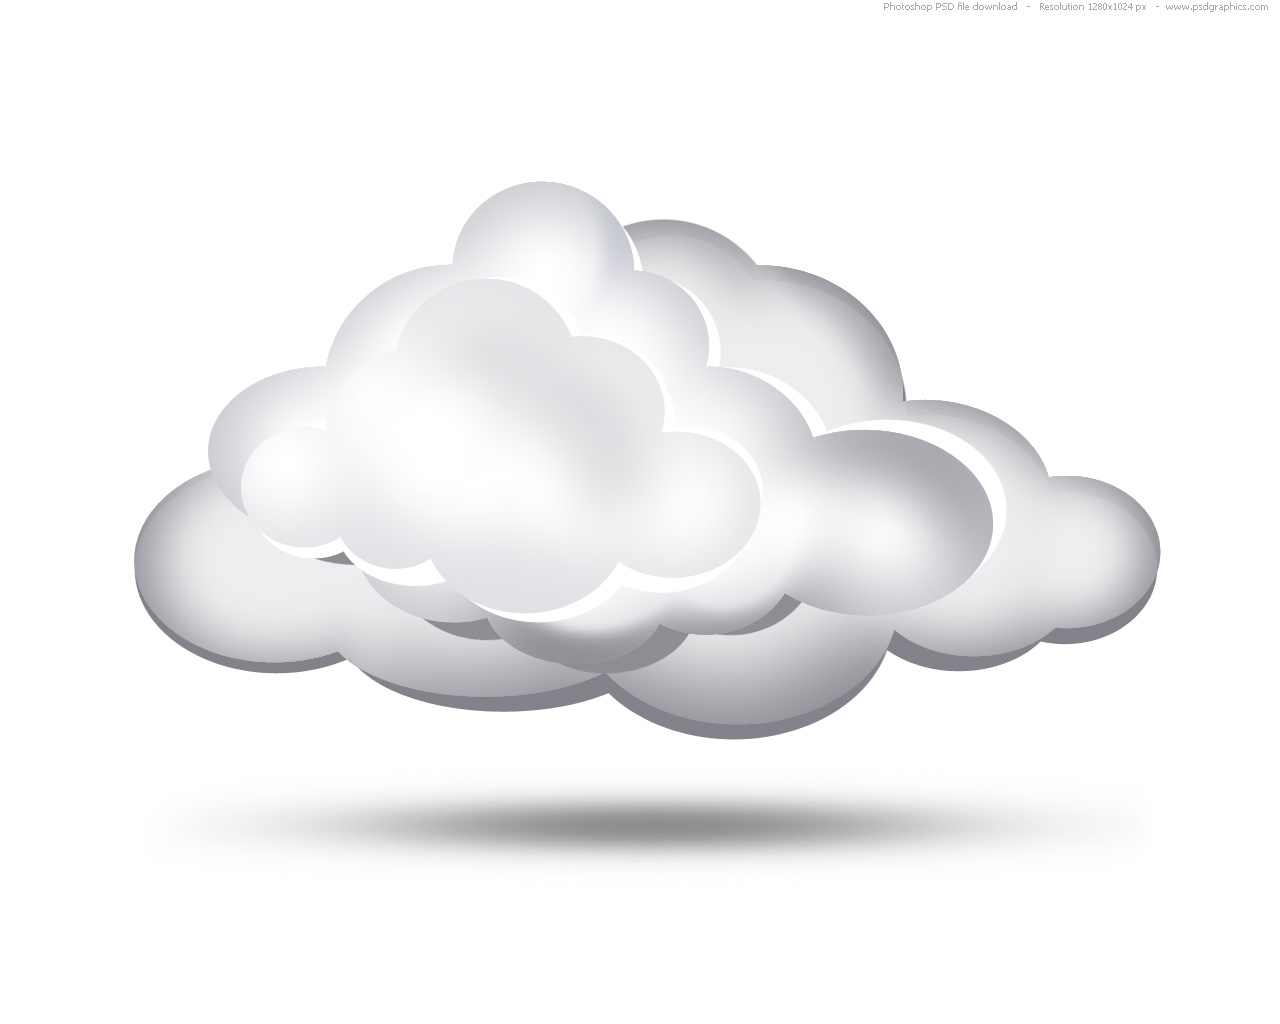 7 Cloud Vector Graphics PSD Images